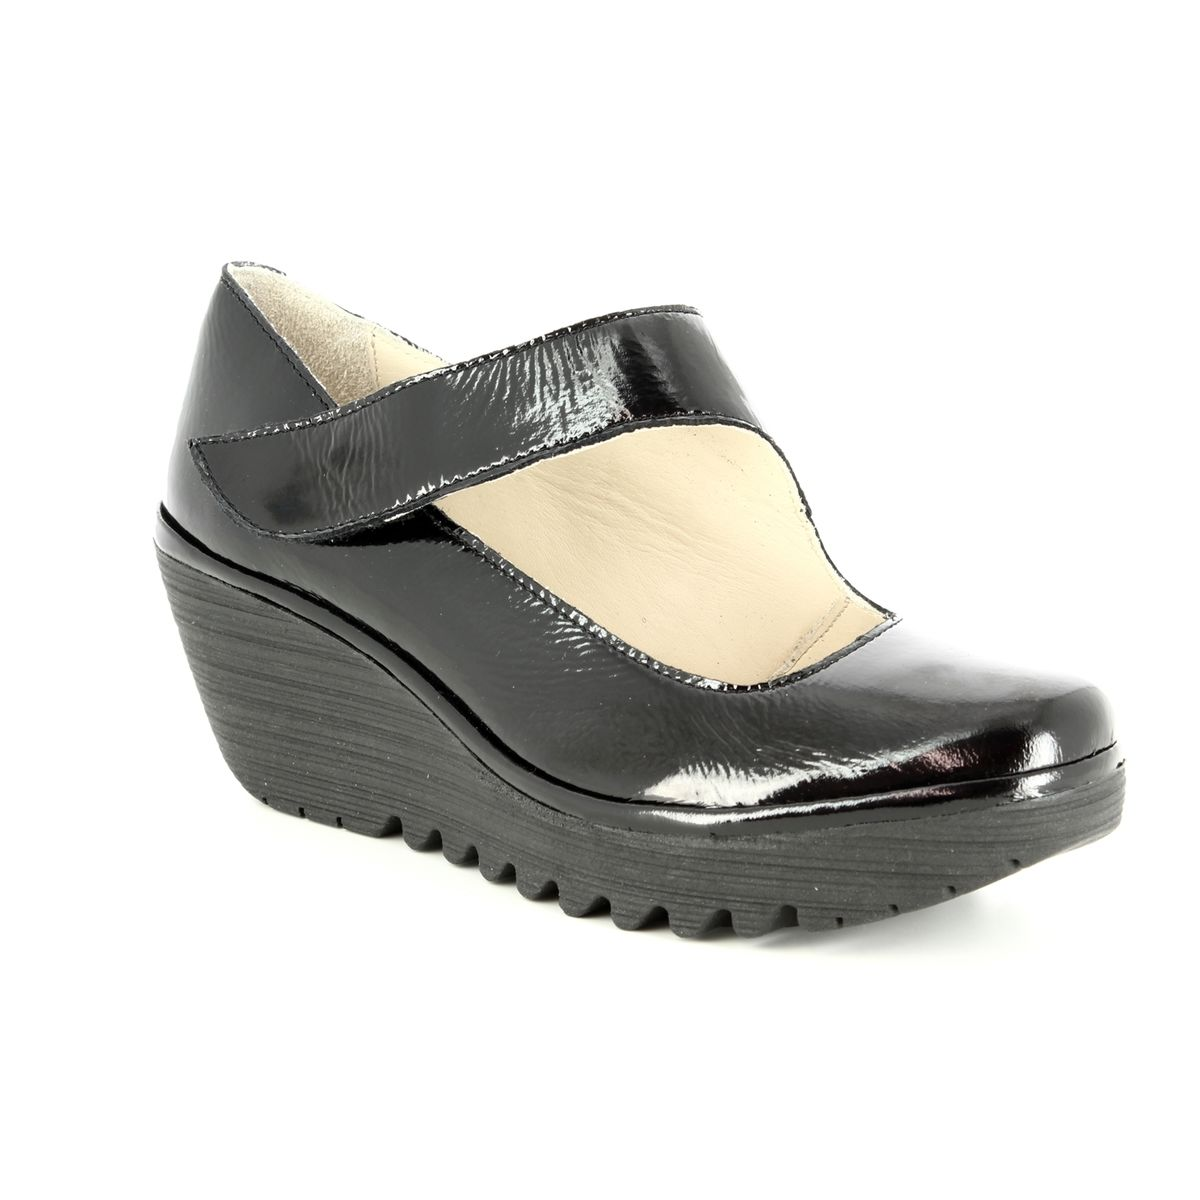 fb2e14d846b Fly london yasi black patent wedge shoes jpg 1200x1200 Fly wedge shoes